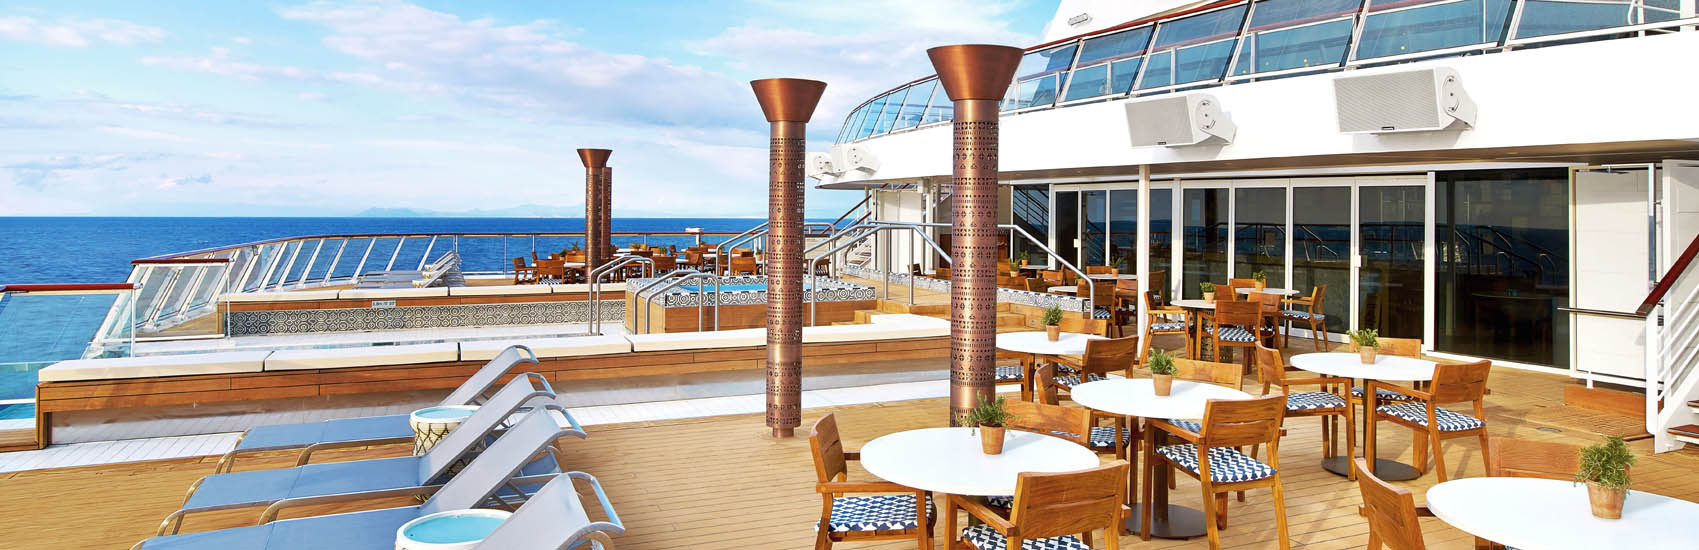 Choose your next cruise with Viking and save 5